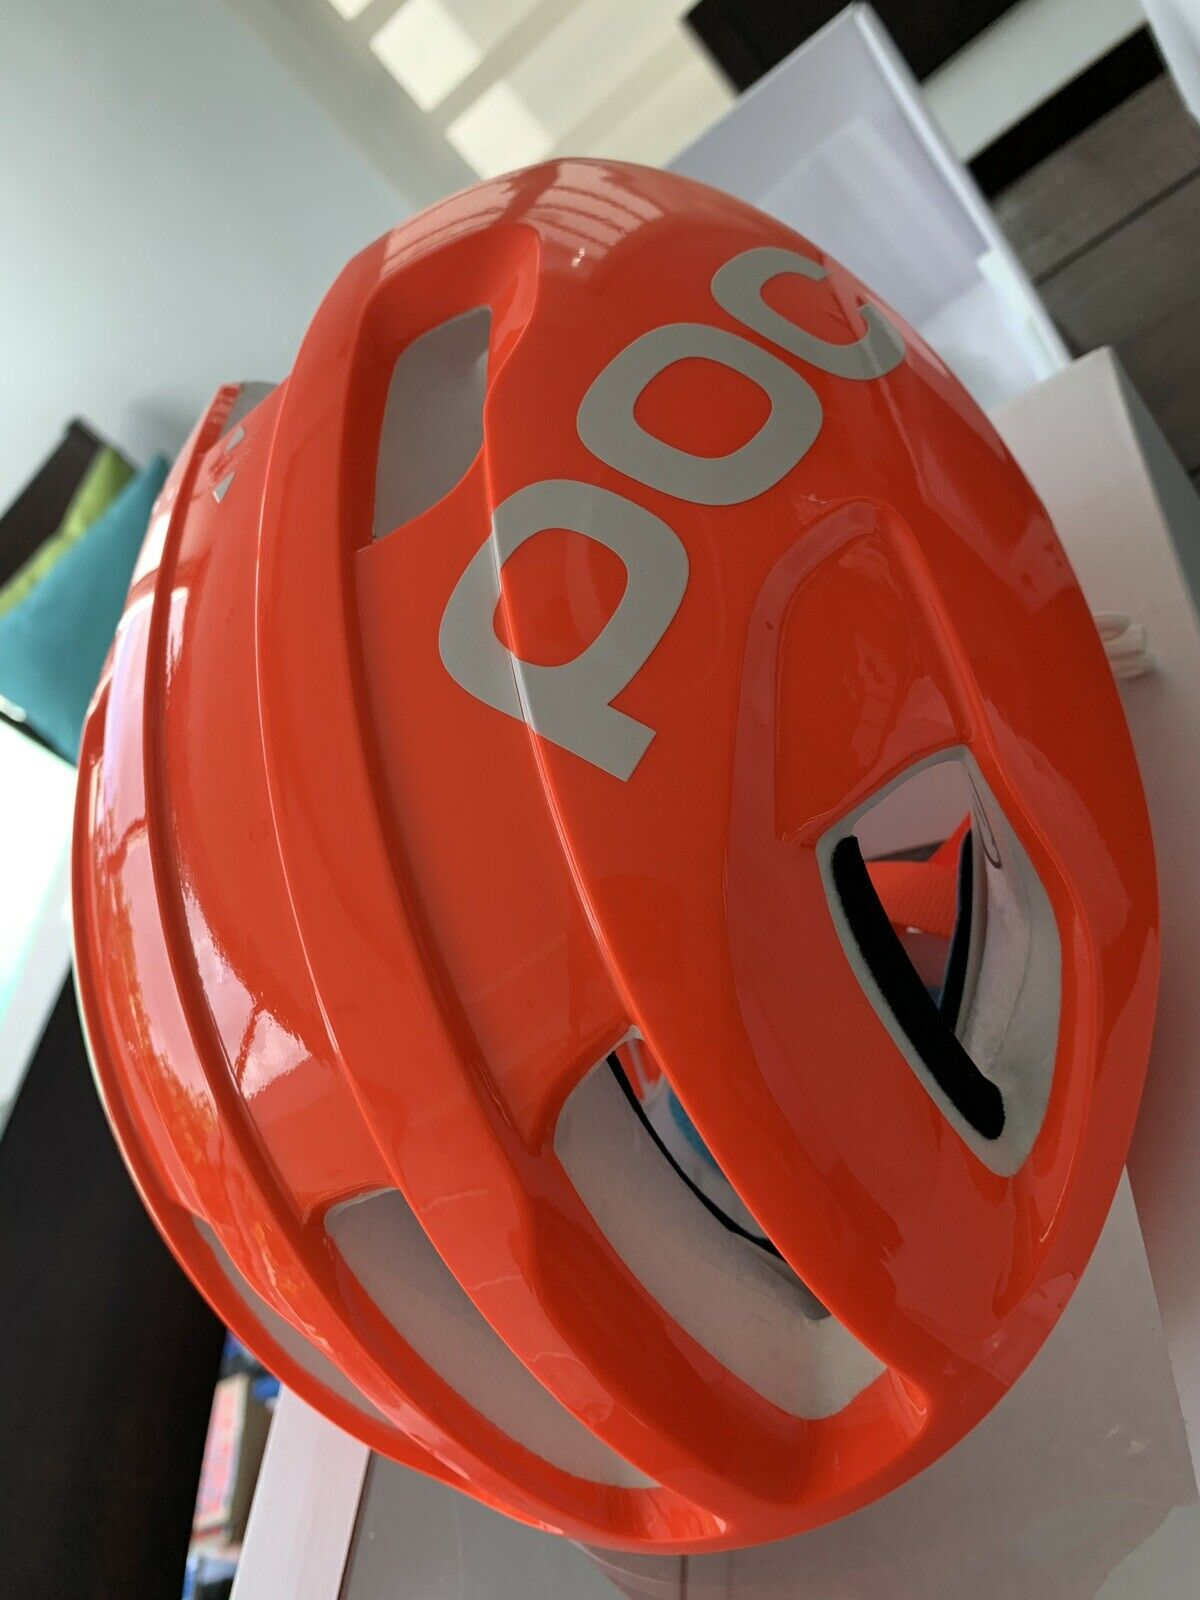 POC ventrale Spin avip Cyclisme Casque Zink Orange Taille M 54-59